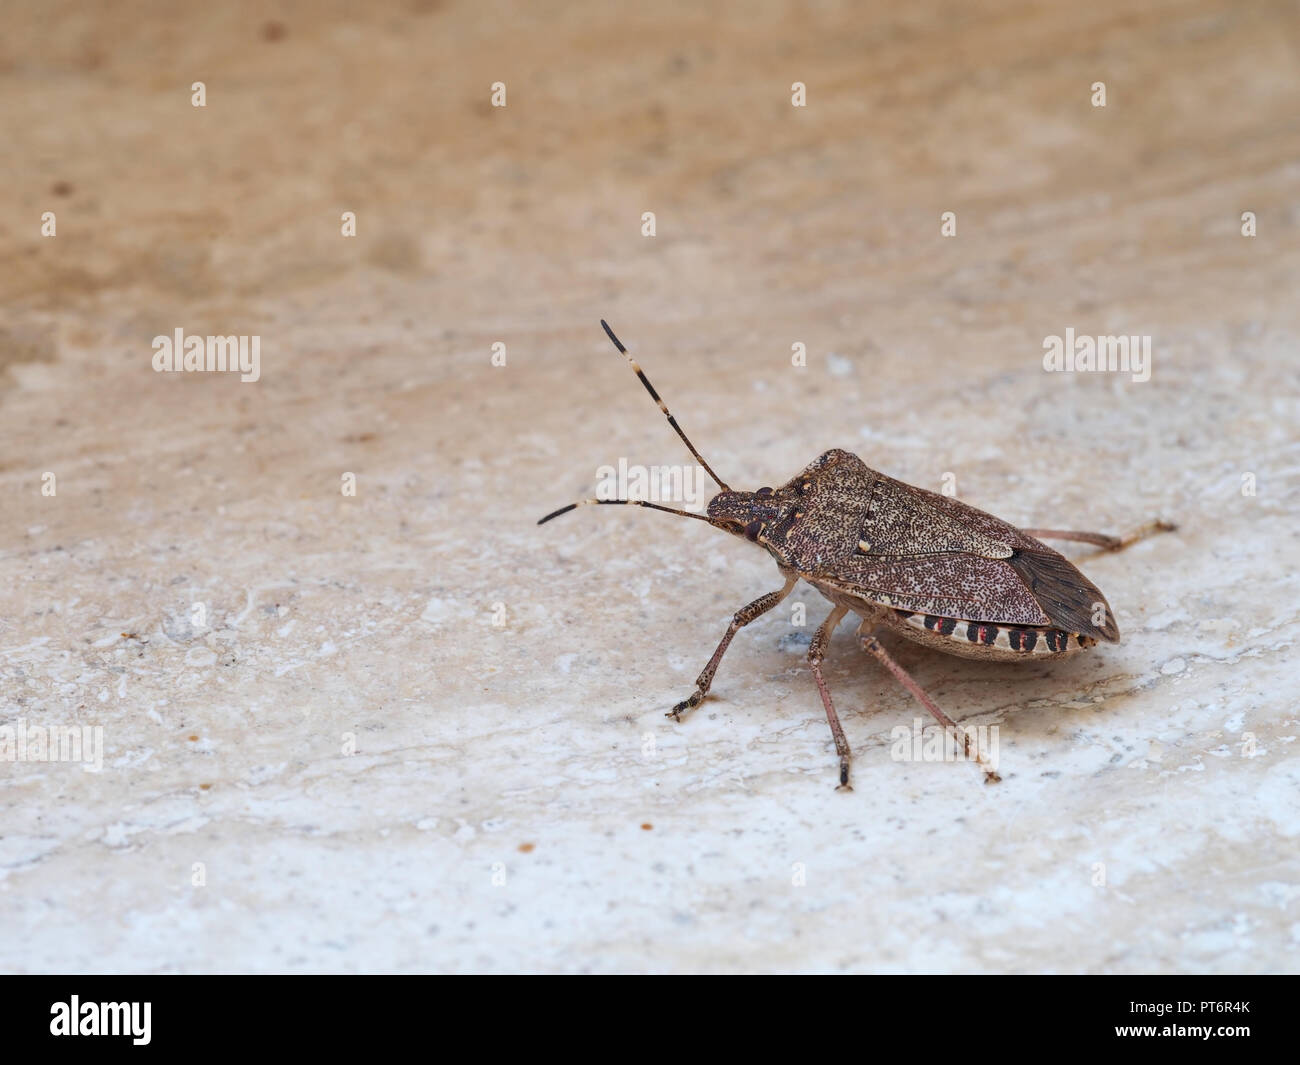 Brown marmorated stink bug Halyomorpha halys, an invasive species from Asia. On plain background with copyspace. Stock Photo